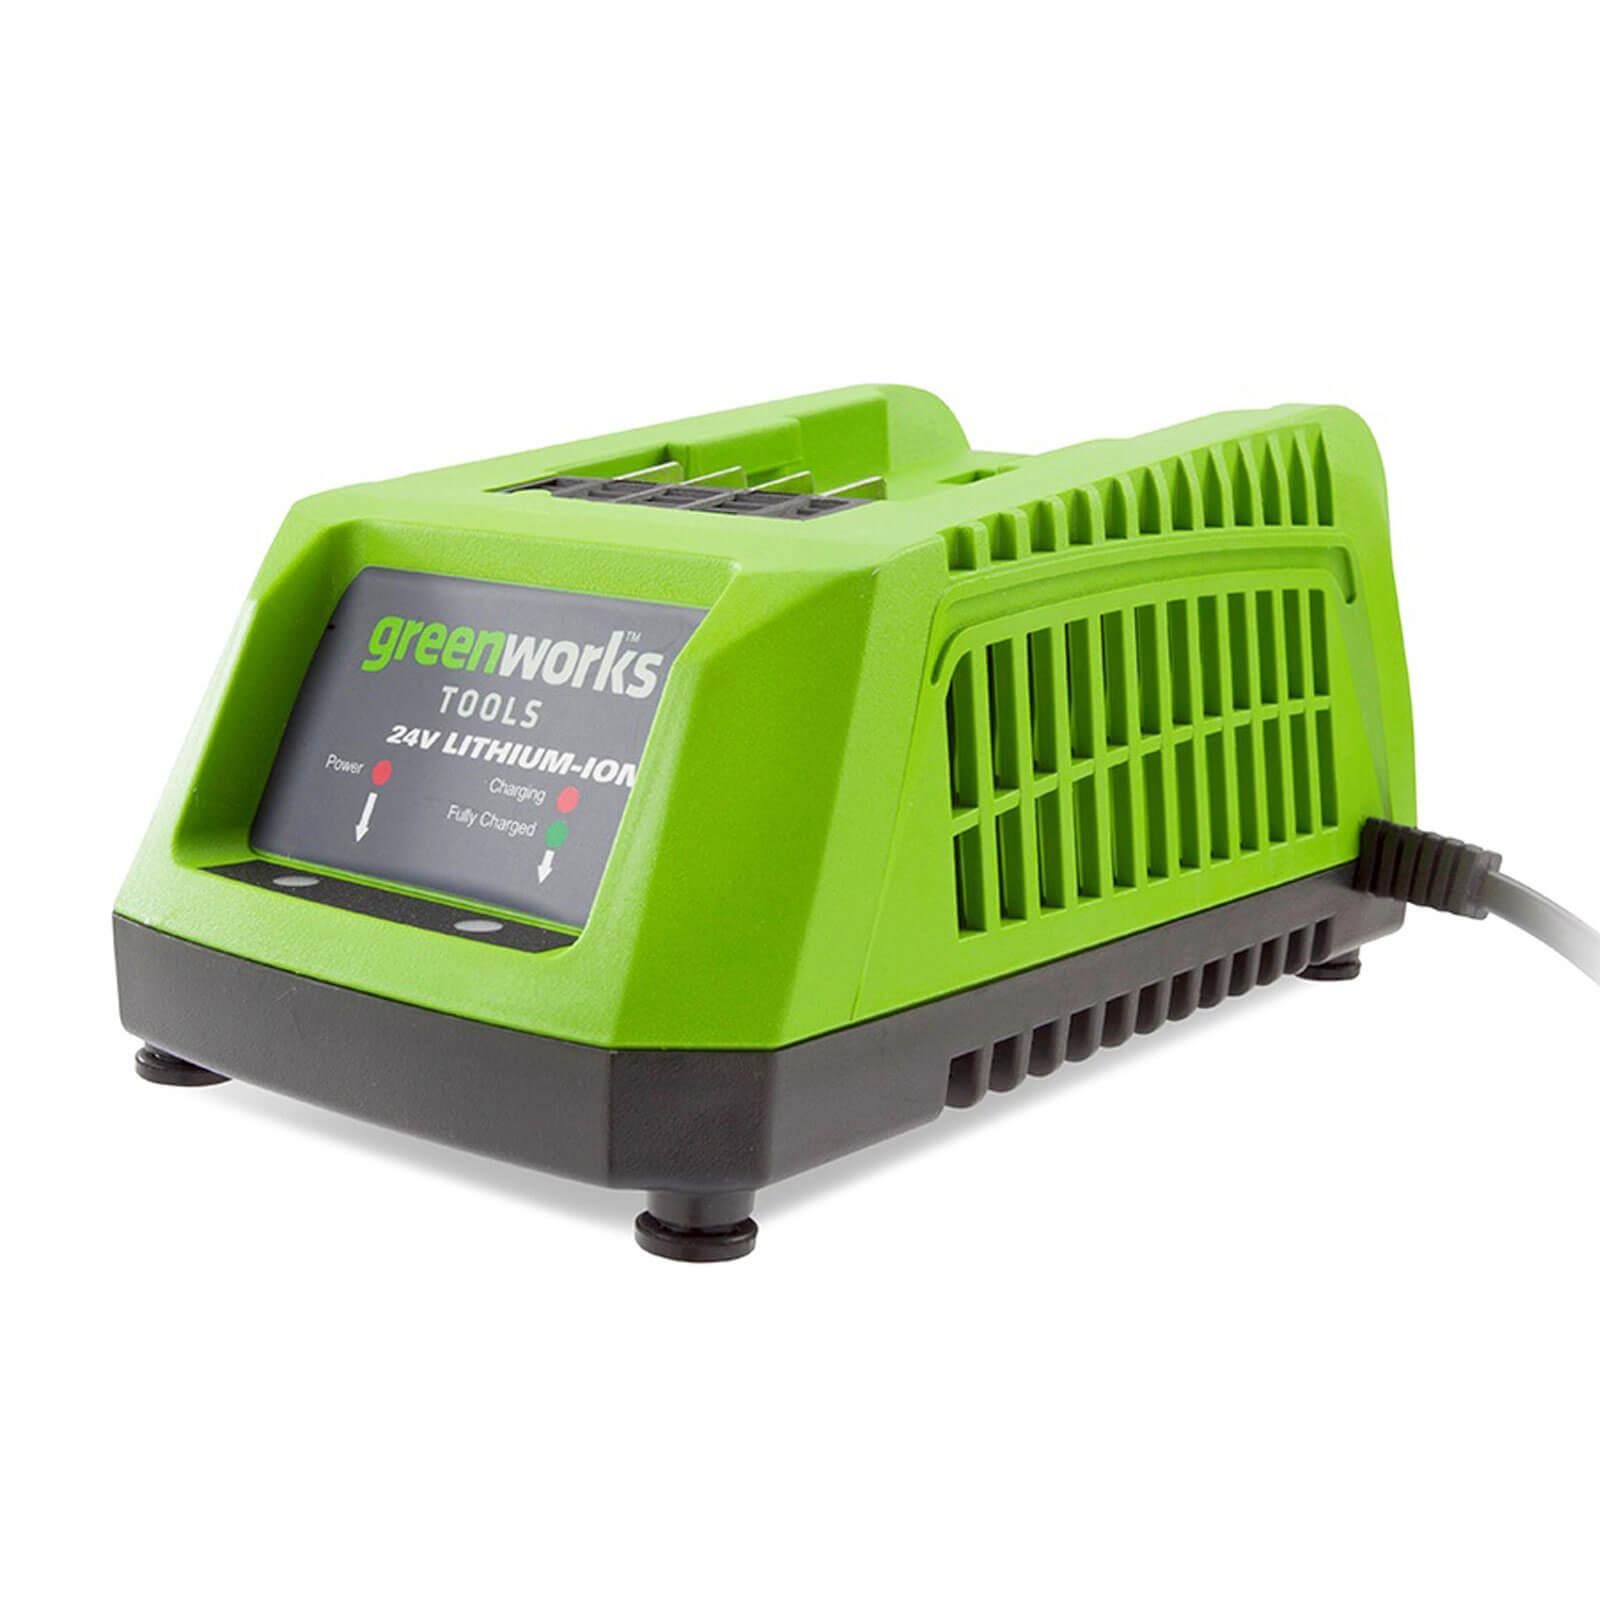 Image of Greenworks G24C E56 24v Cordless Li-ion Fast Charger 240v